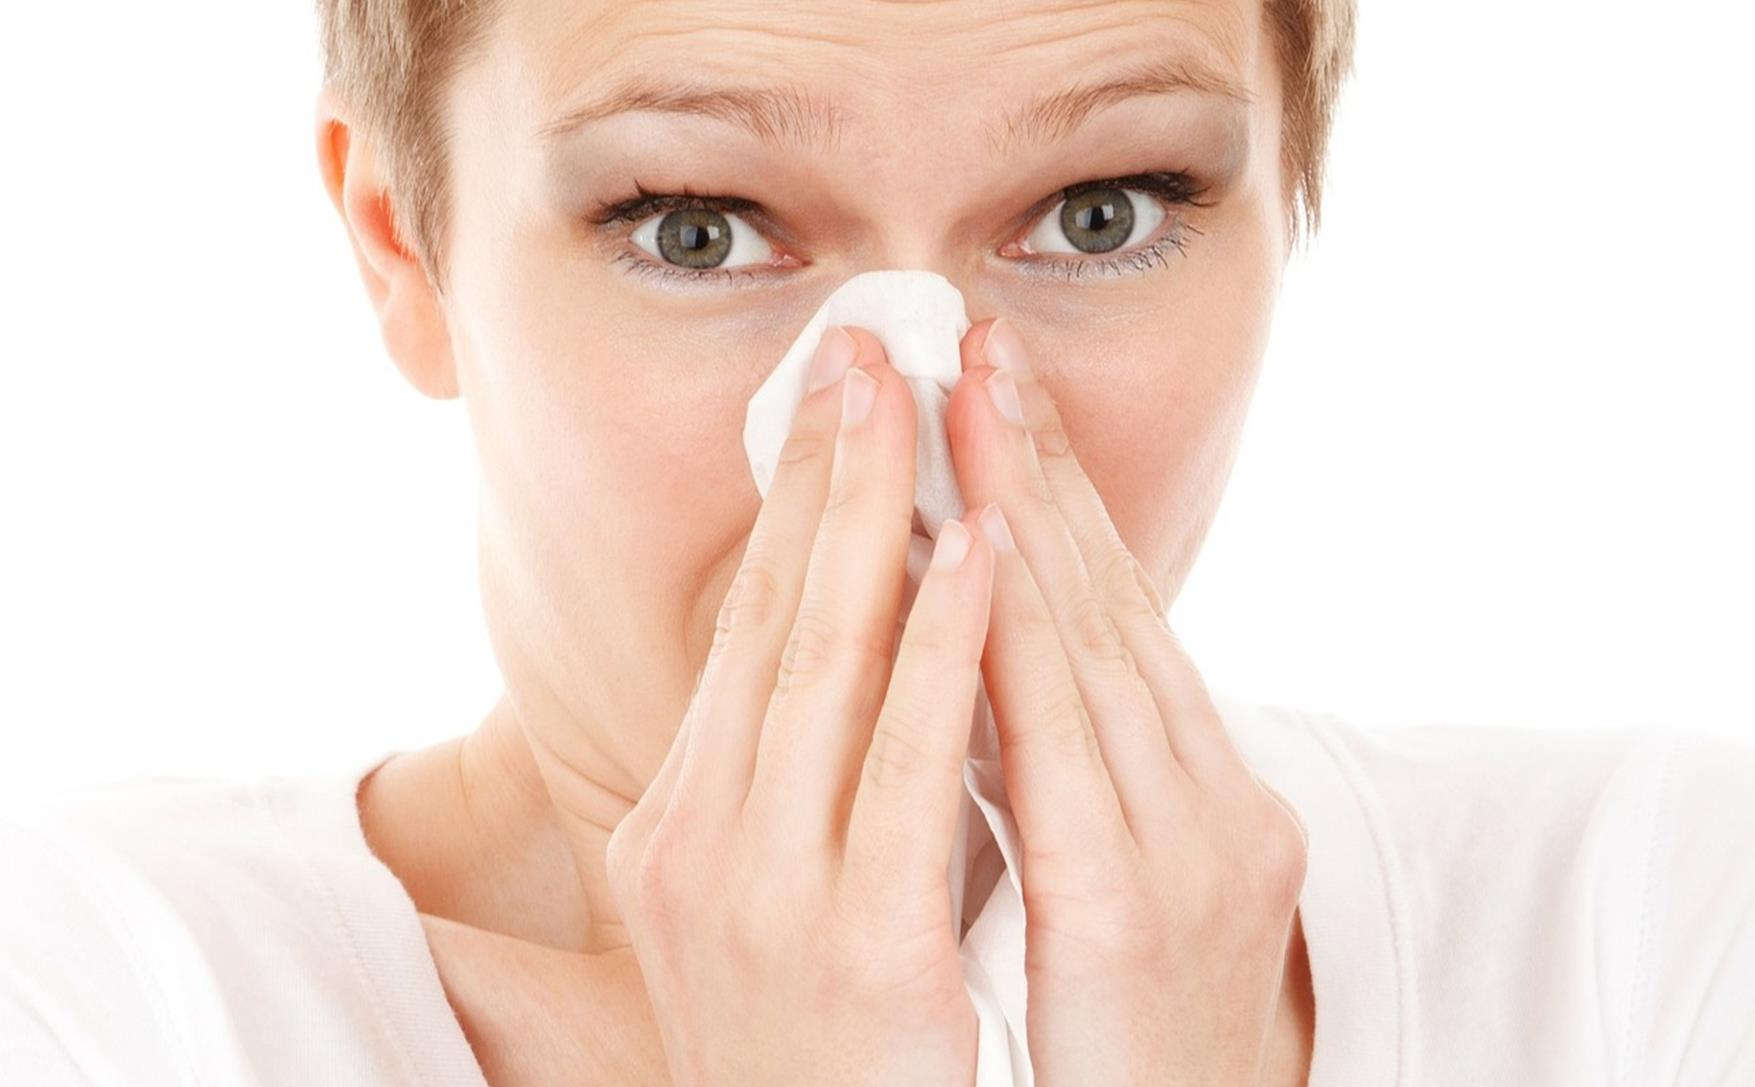 Chest tapping for allergies or cold